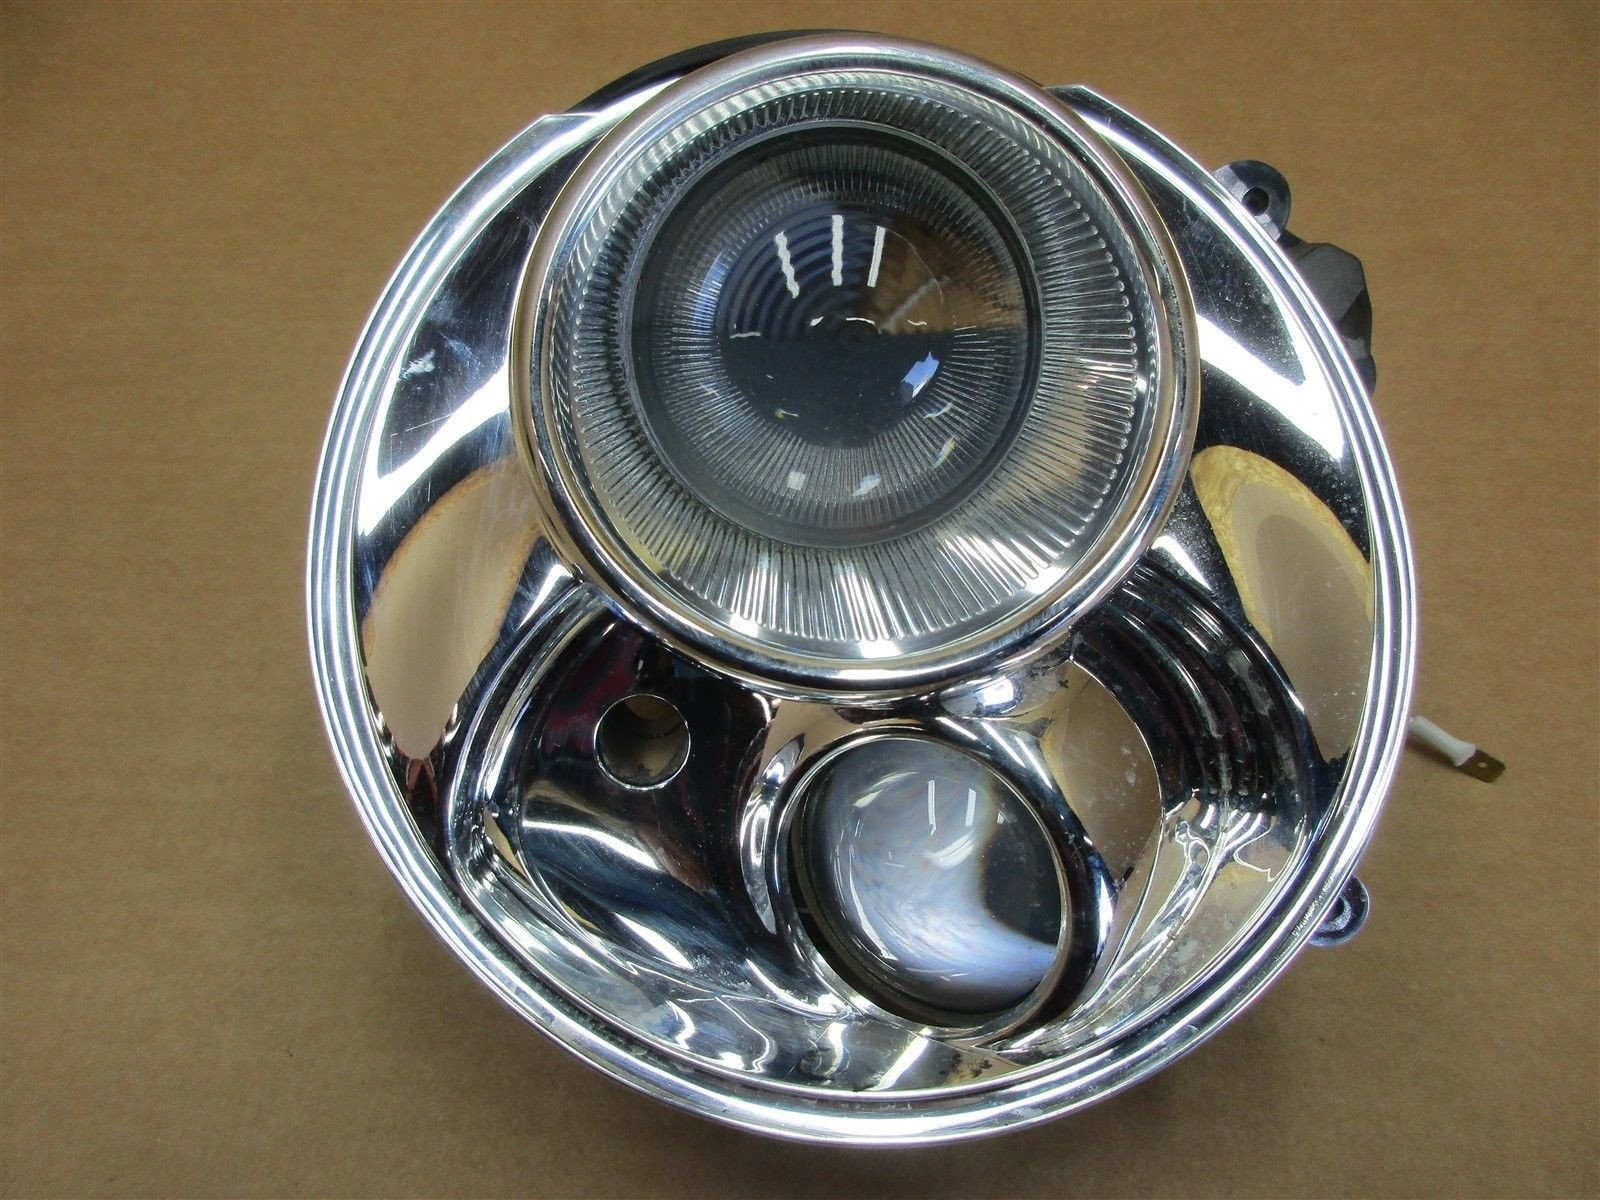 04 Cayenne Turbo Porsche 955 R PASSENGER HEADLIGHT HARDWARE HEAD LIGHT 135,874